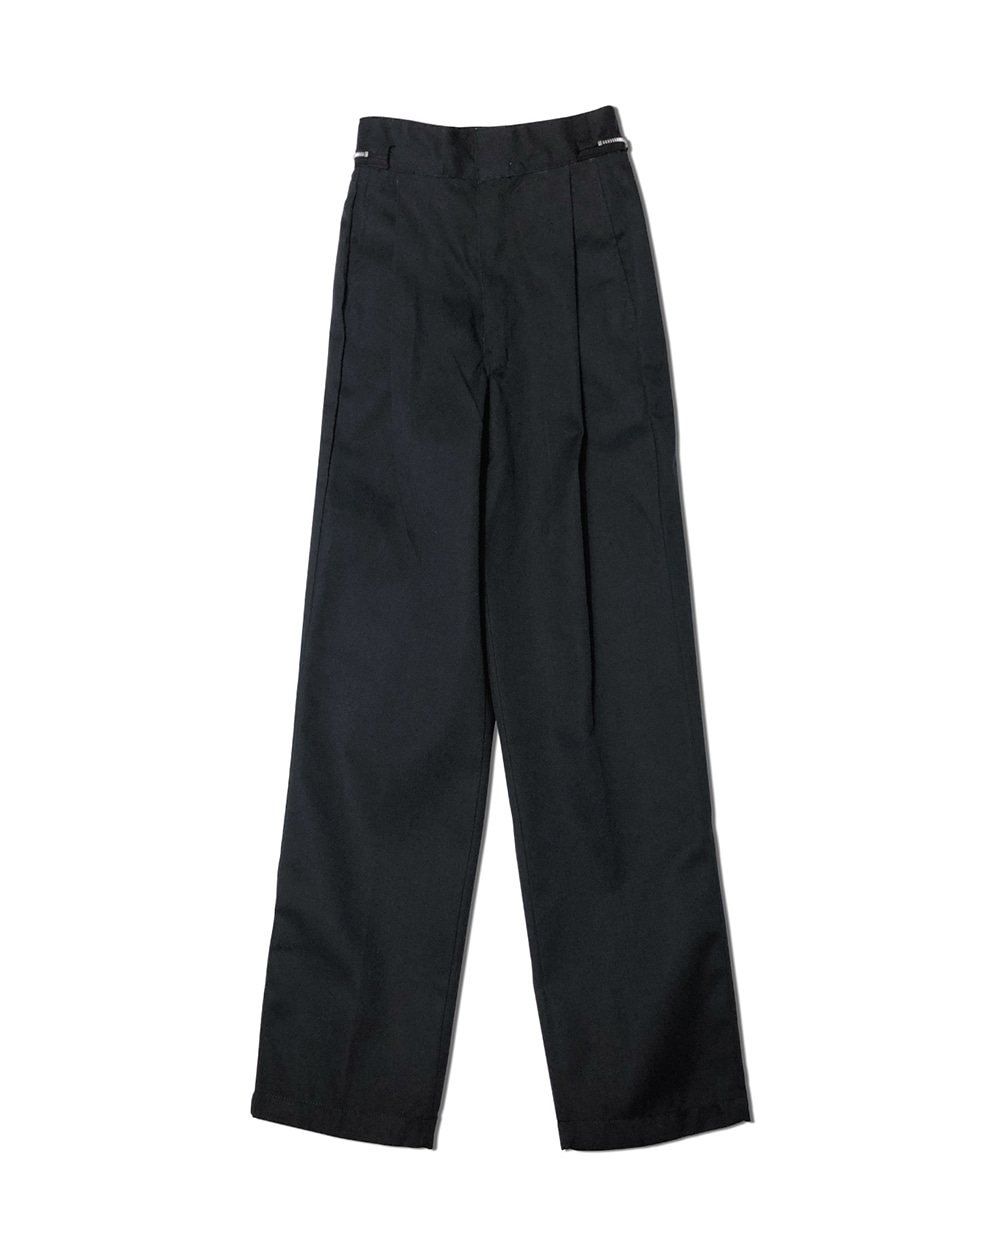 GOOD NEWS  WIDE FIT PANTS (Black)